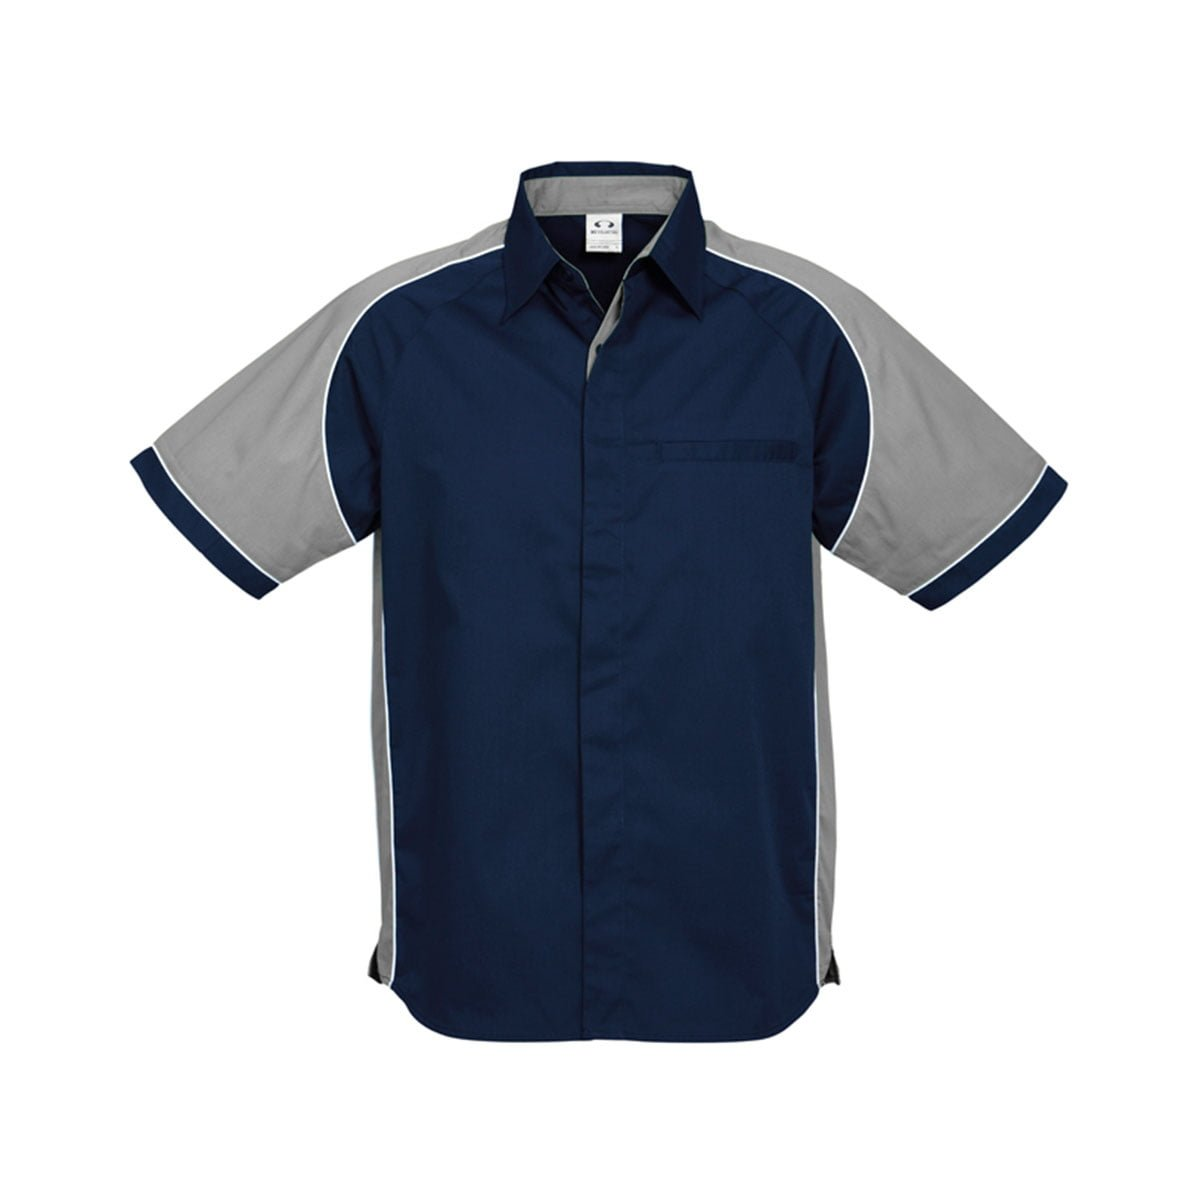 Mens Nitro Shirt-Navy / Grey / White